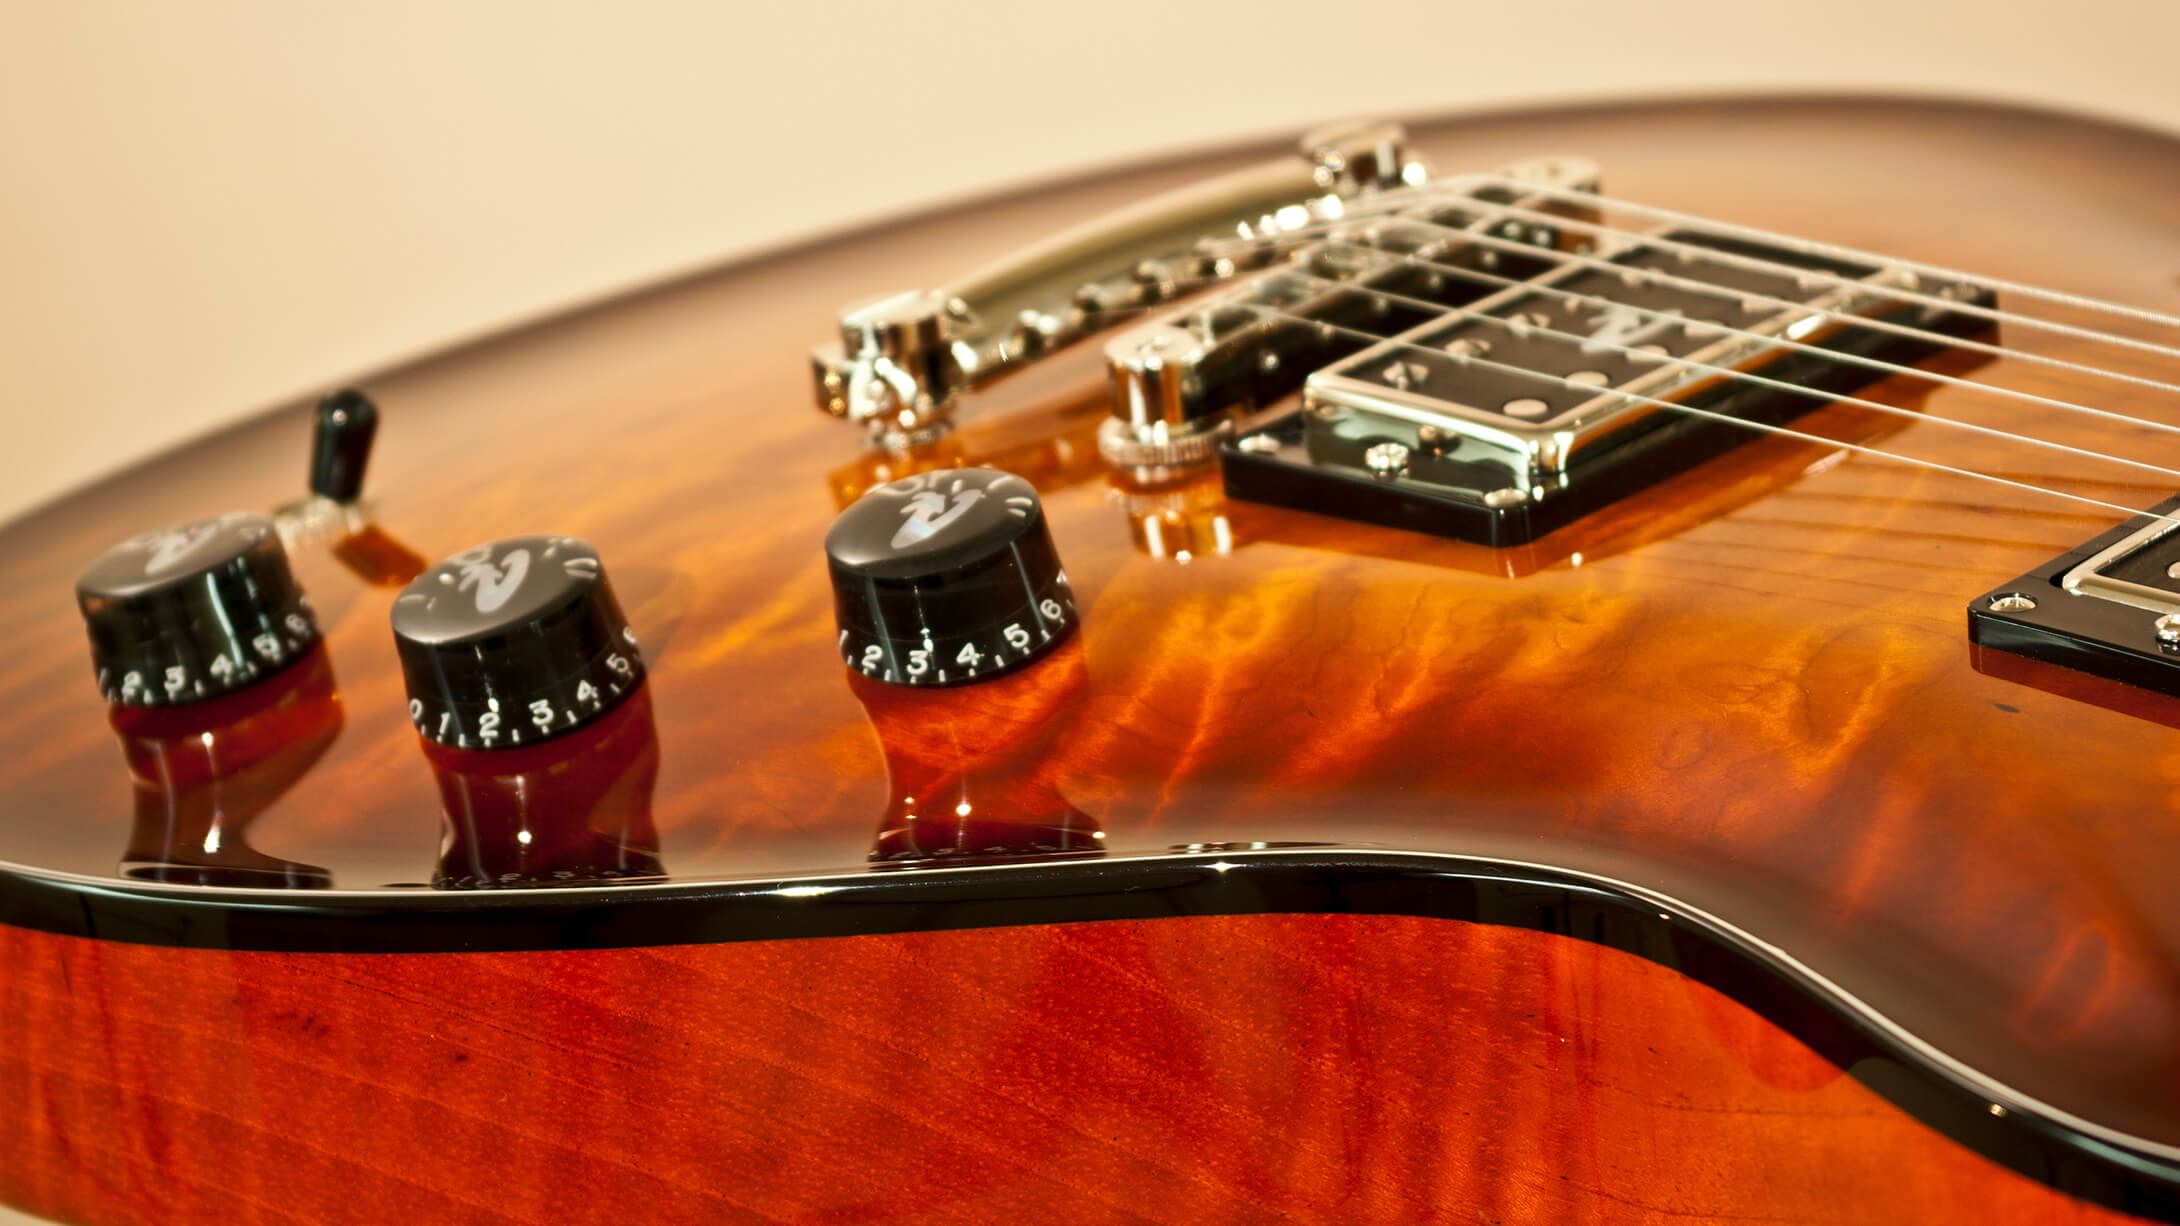 Lacquer Or Polyurethane For Guitar